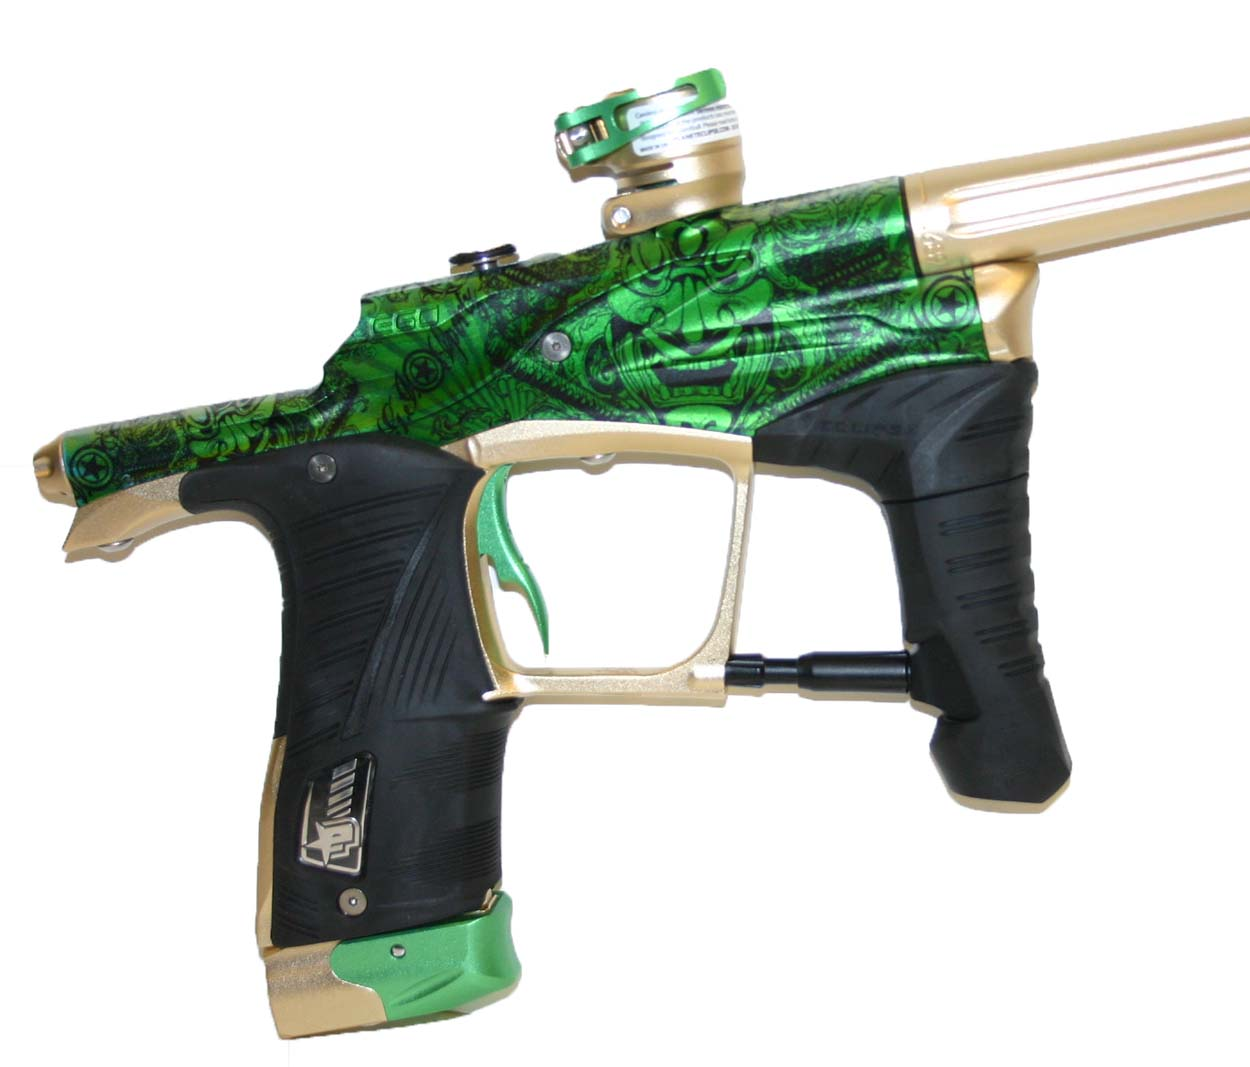 Planet Eclipse EGO LV1 Paintball Marker Gun - Limited Edition GI ...